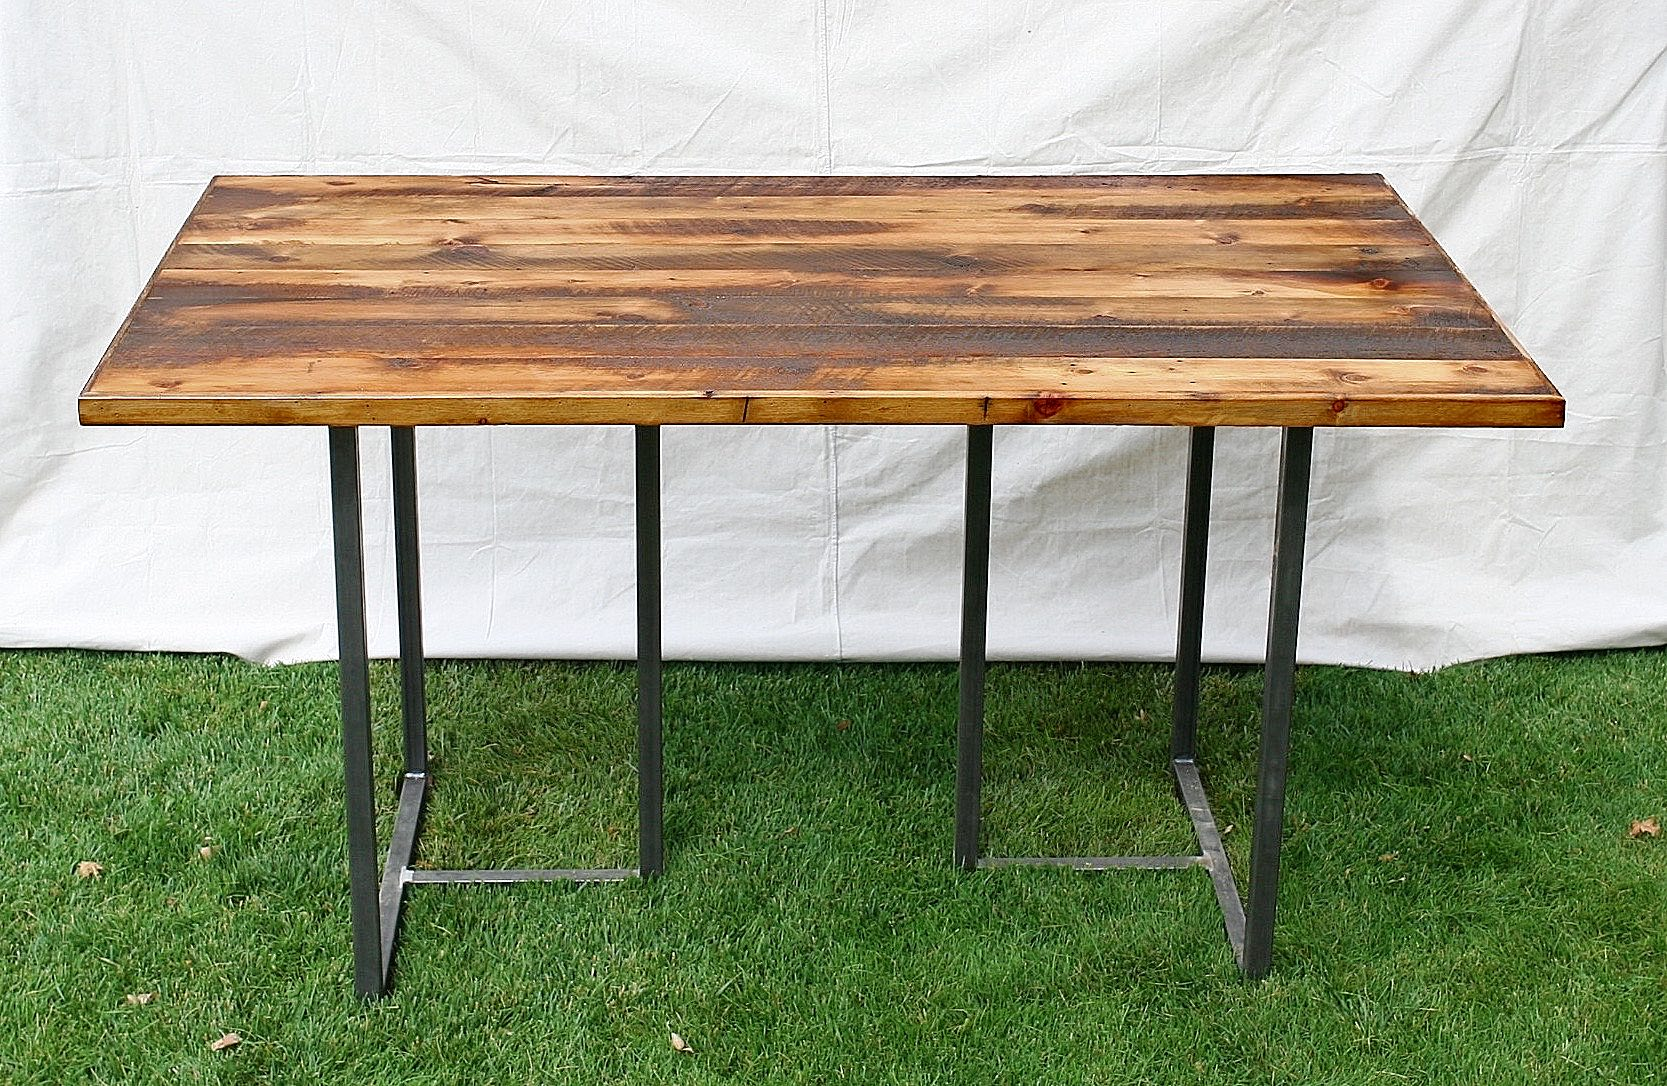 Bar Height Table With Welded T Legs Board Bolt - Welded table base